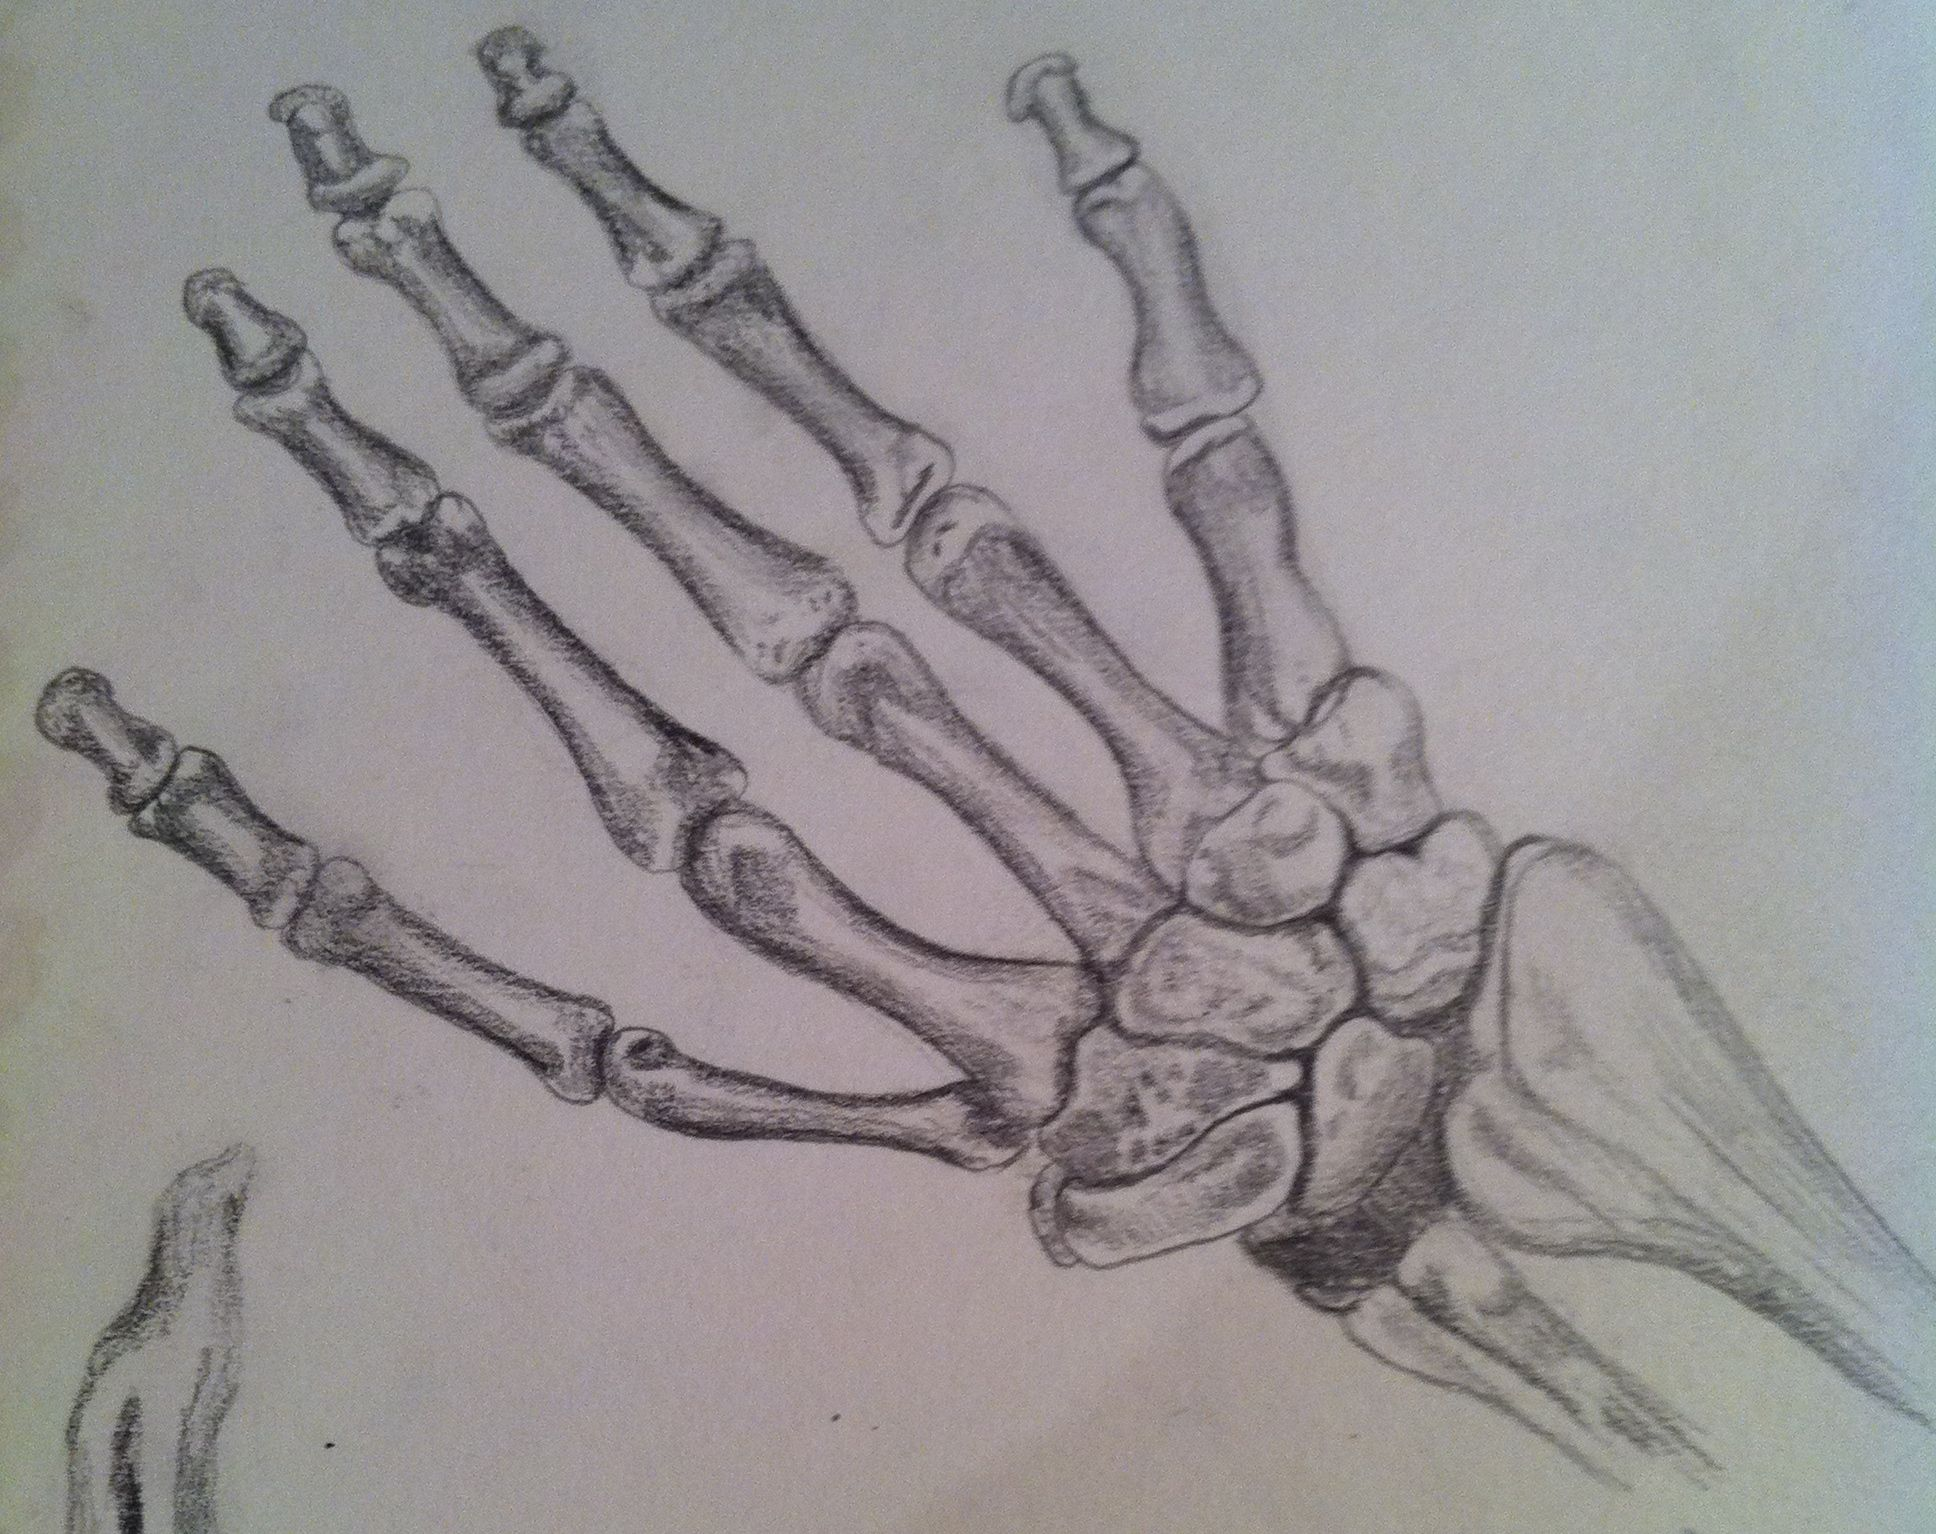 The skeleton hand